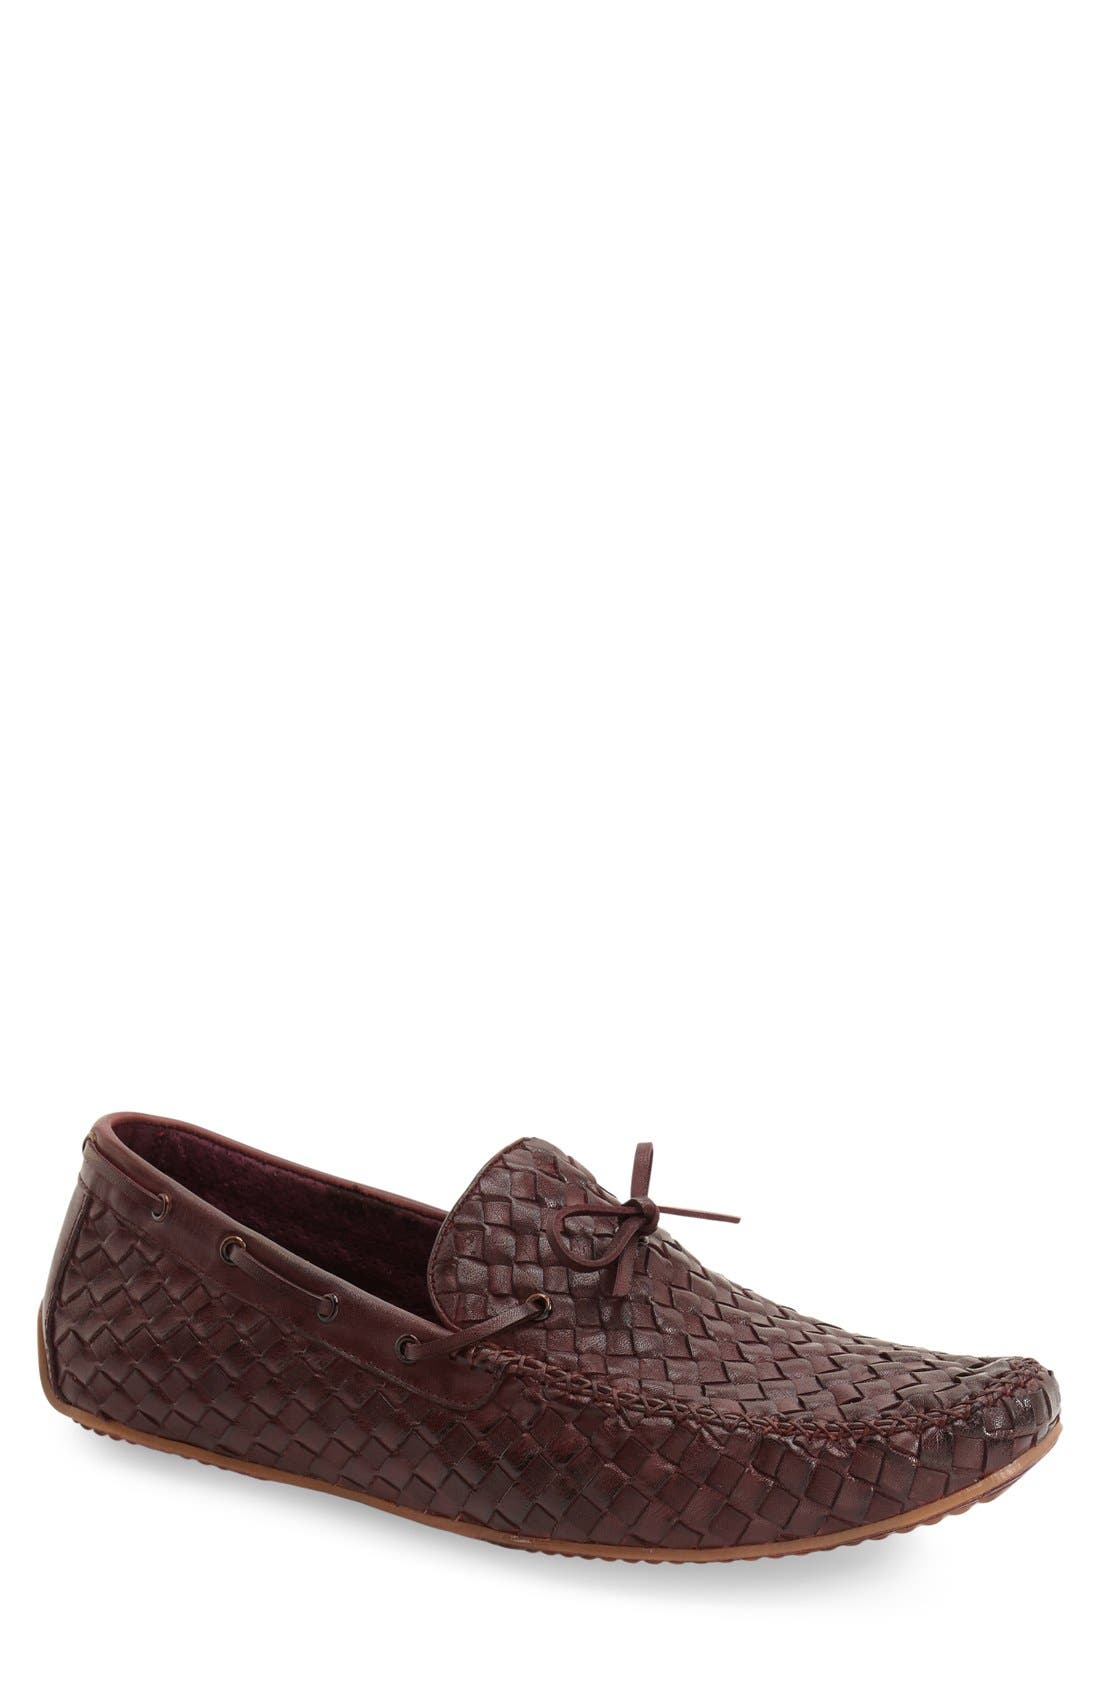 Leather Loafer,                         Main,                         color, Wine Leather